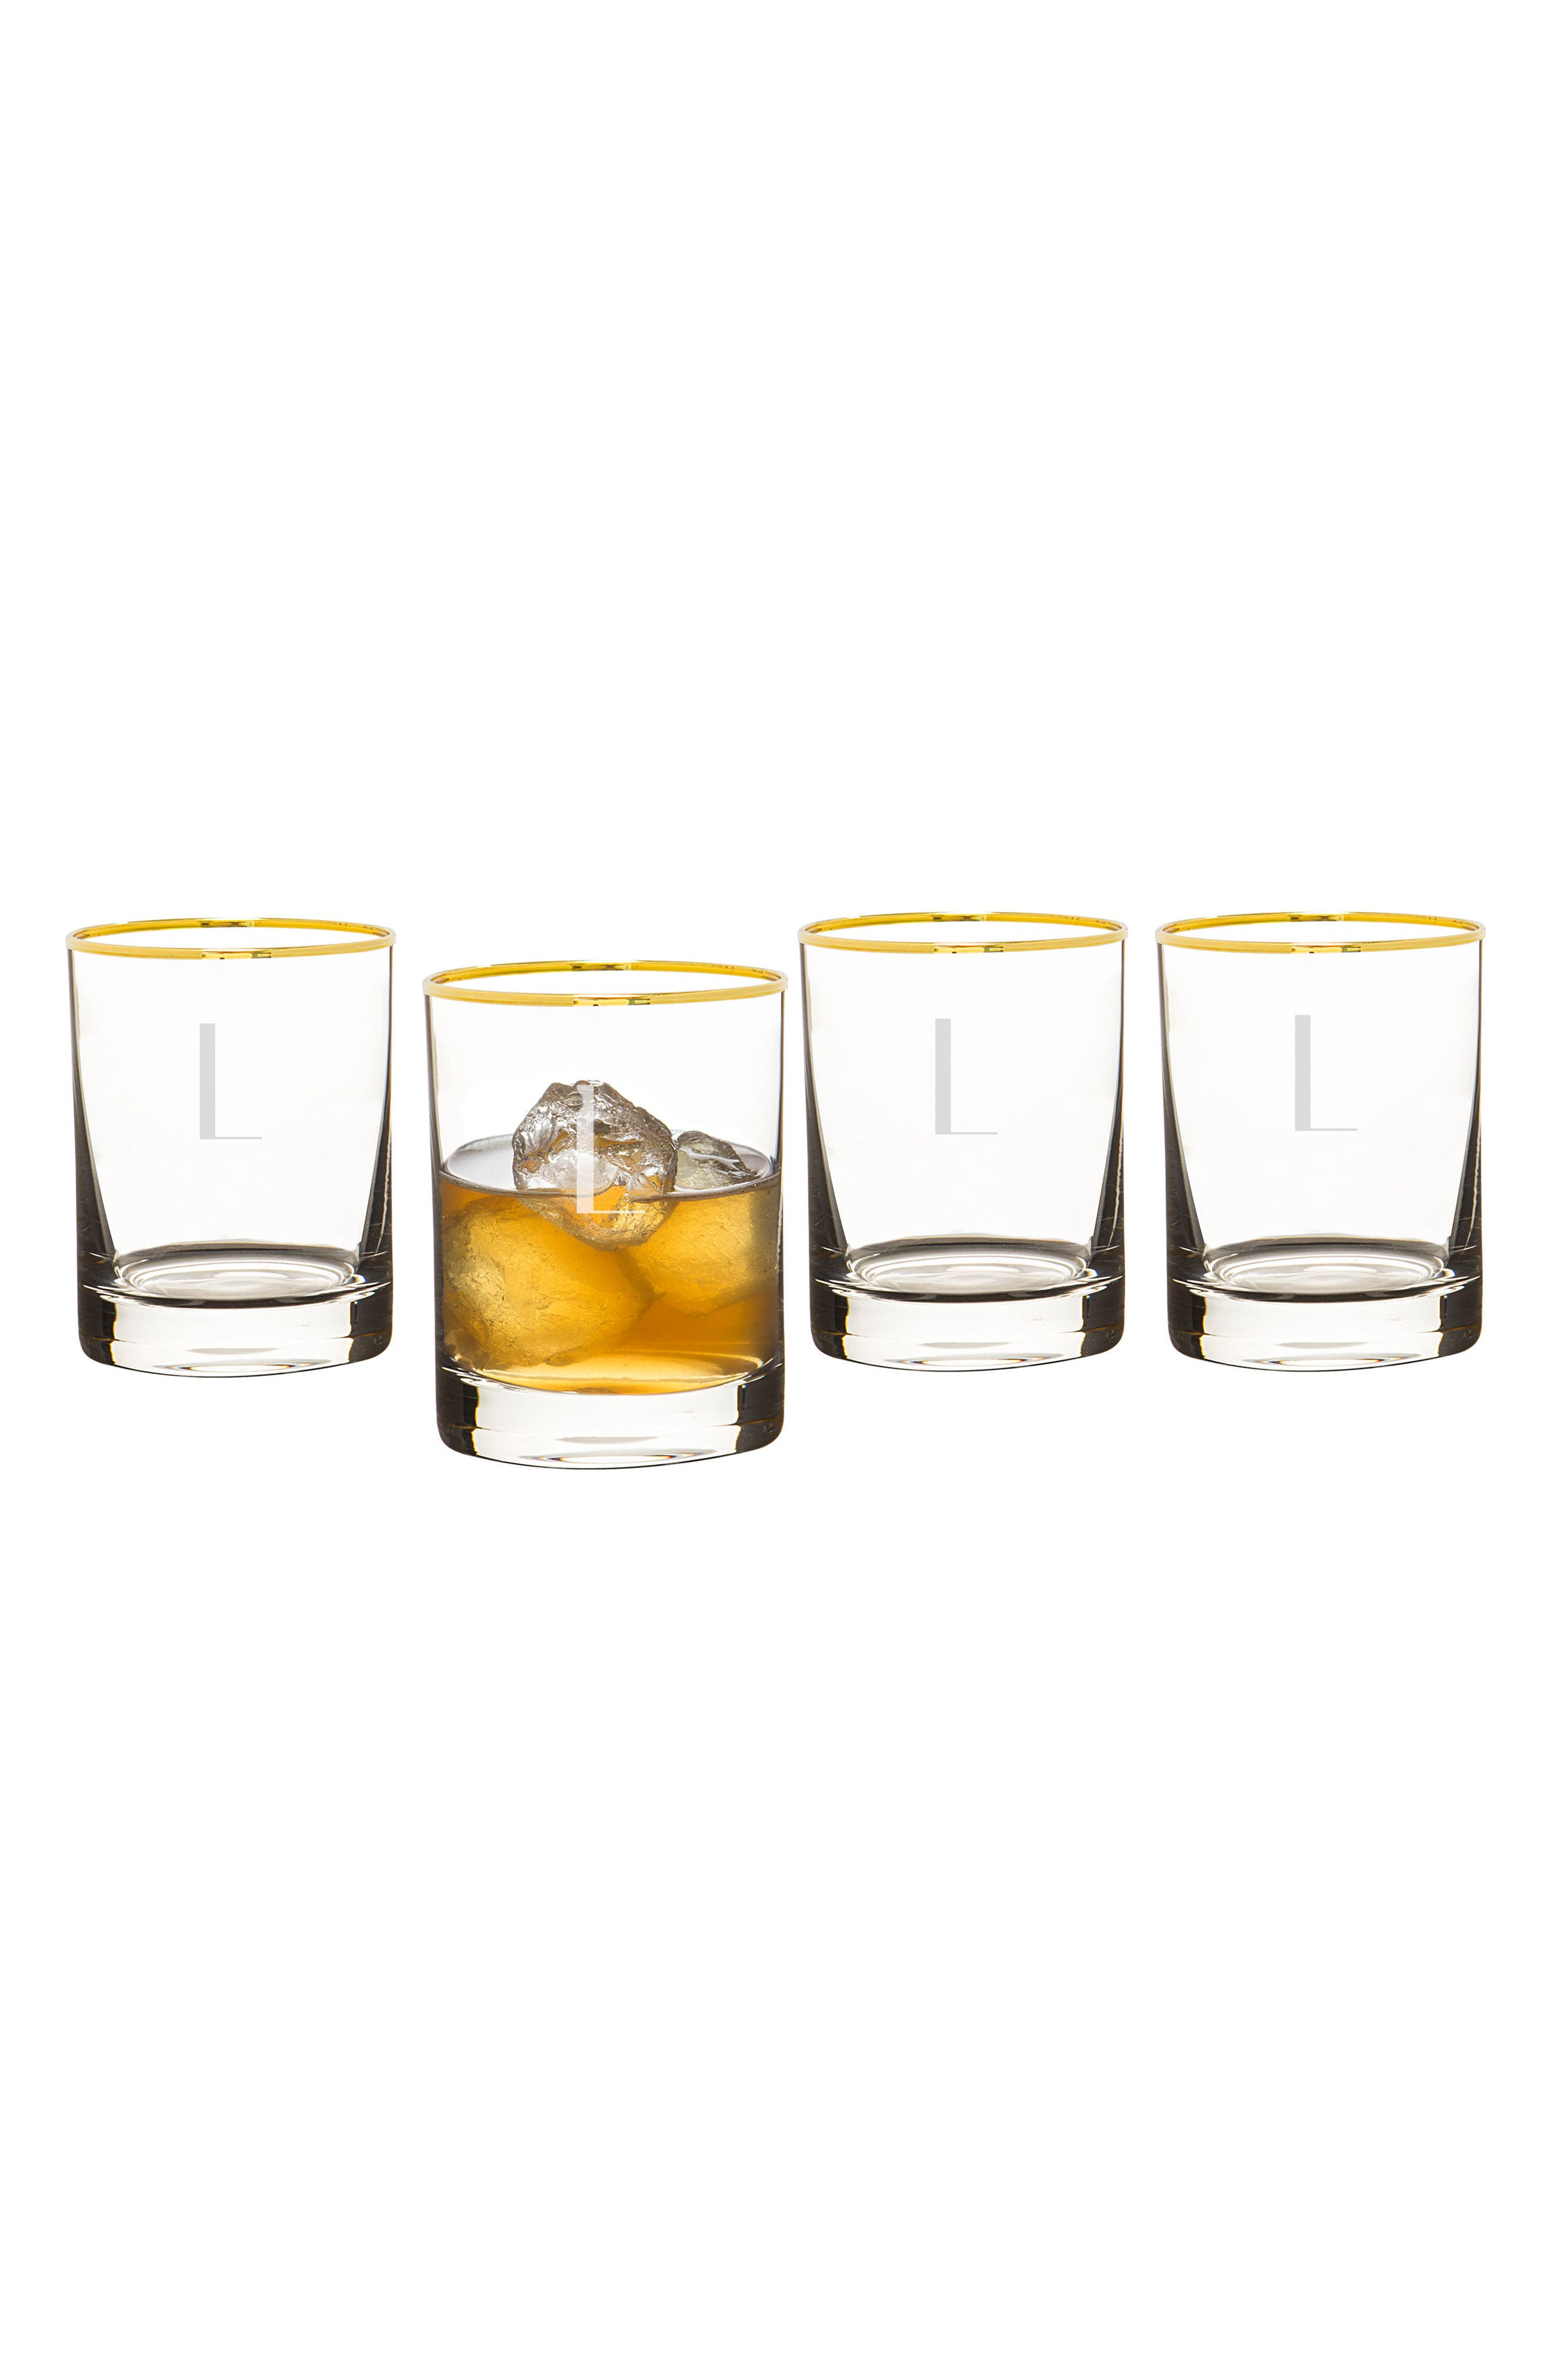 Monogram Set of 4 Double Old Fashioned Glasses,                             Main thumbnail 13, color,